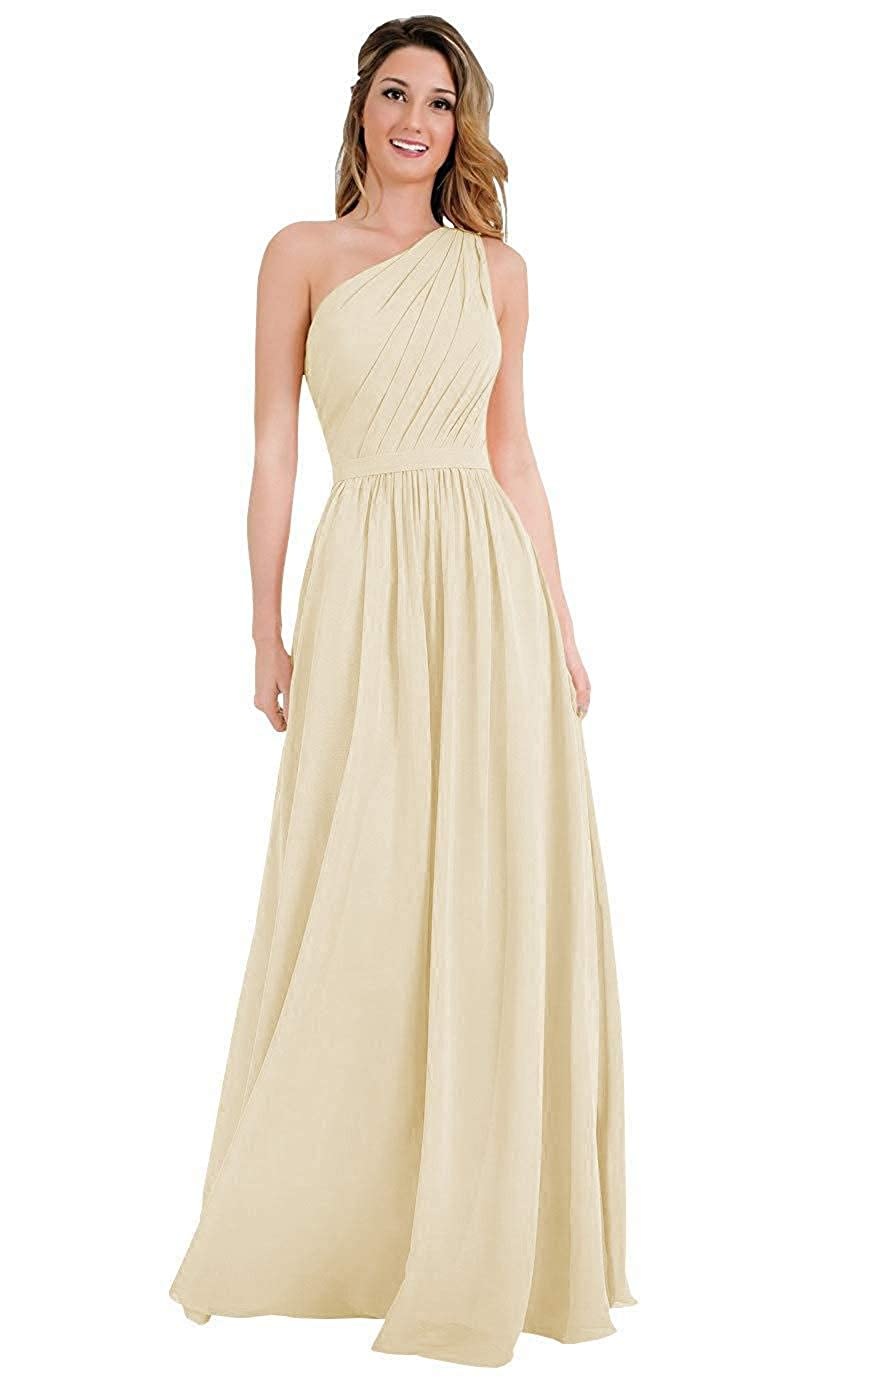 Staypretty One Shoulder Bridesmaid Dresses Chiffon Long A-line Womens Evening Formal Gown